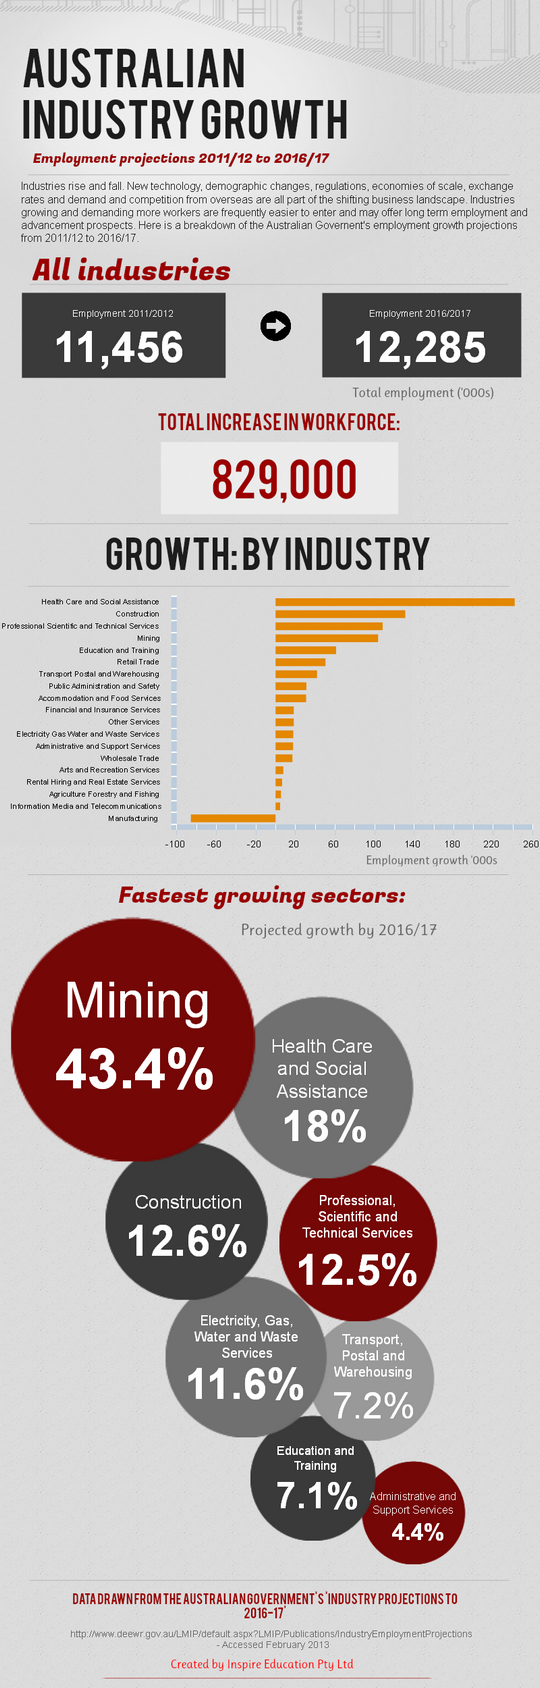 Mining, Health Care and Social Assistance, and Training are all projected to grow in Australia